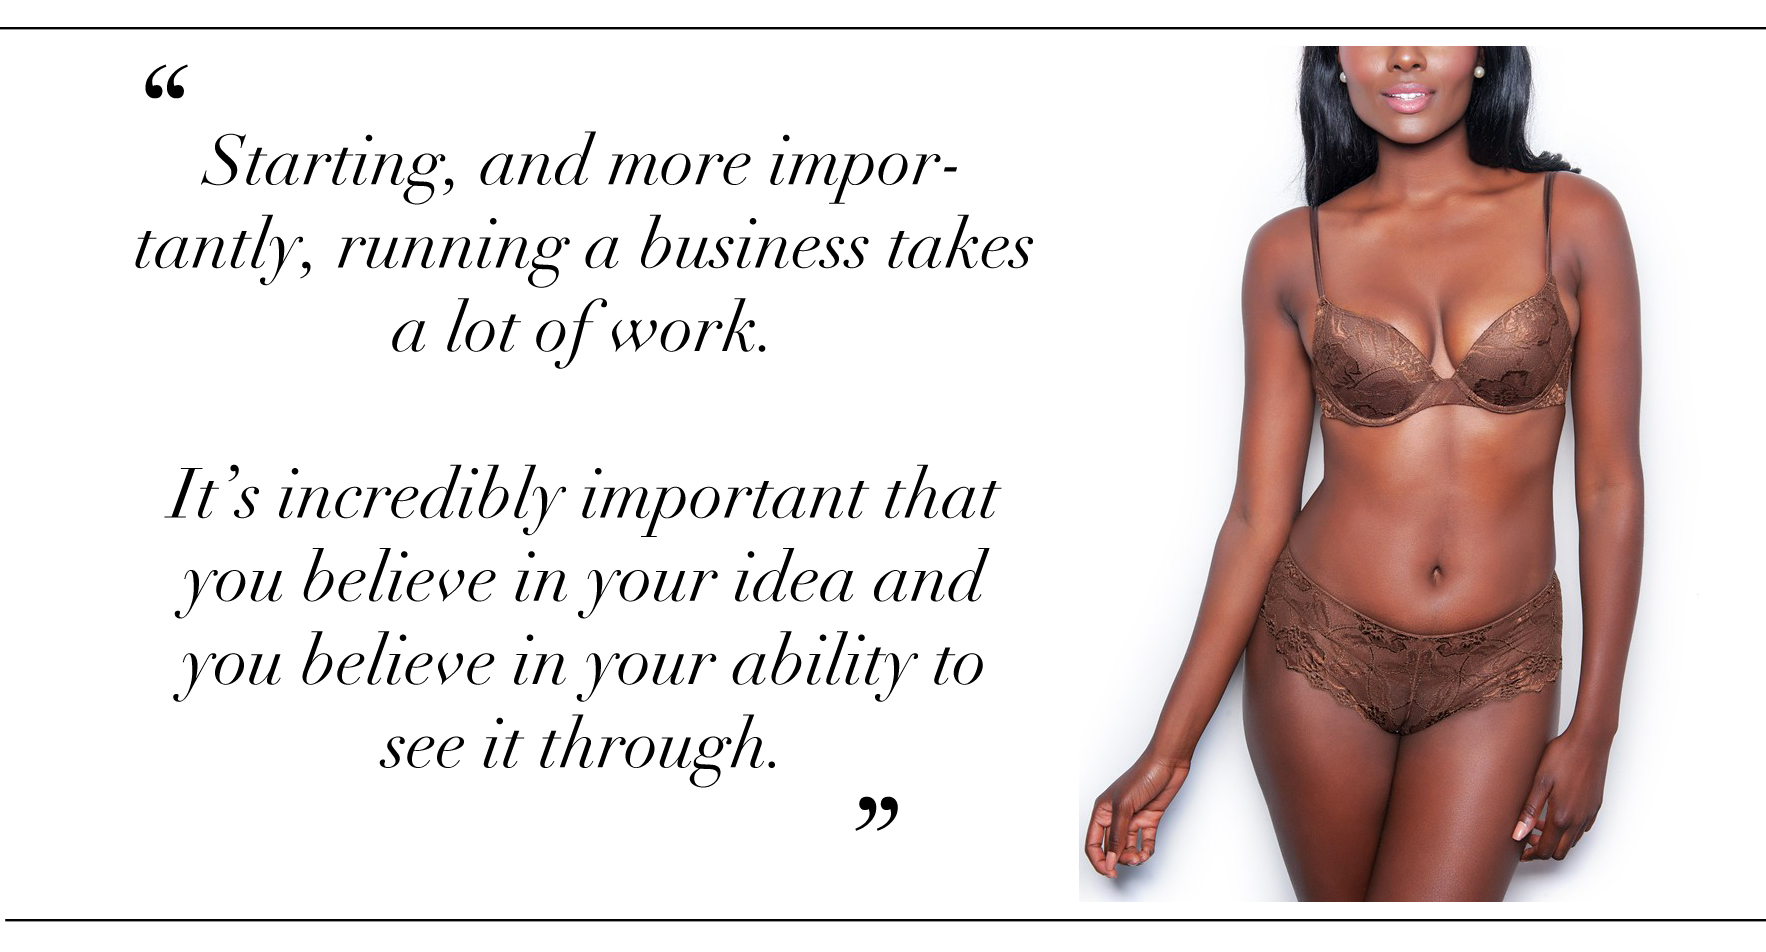 nubian-skin-interview-nude-lingerie-quote